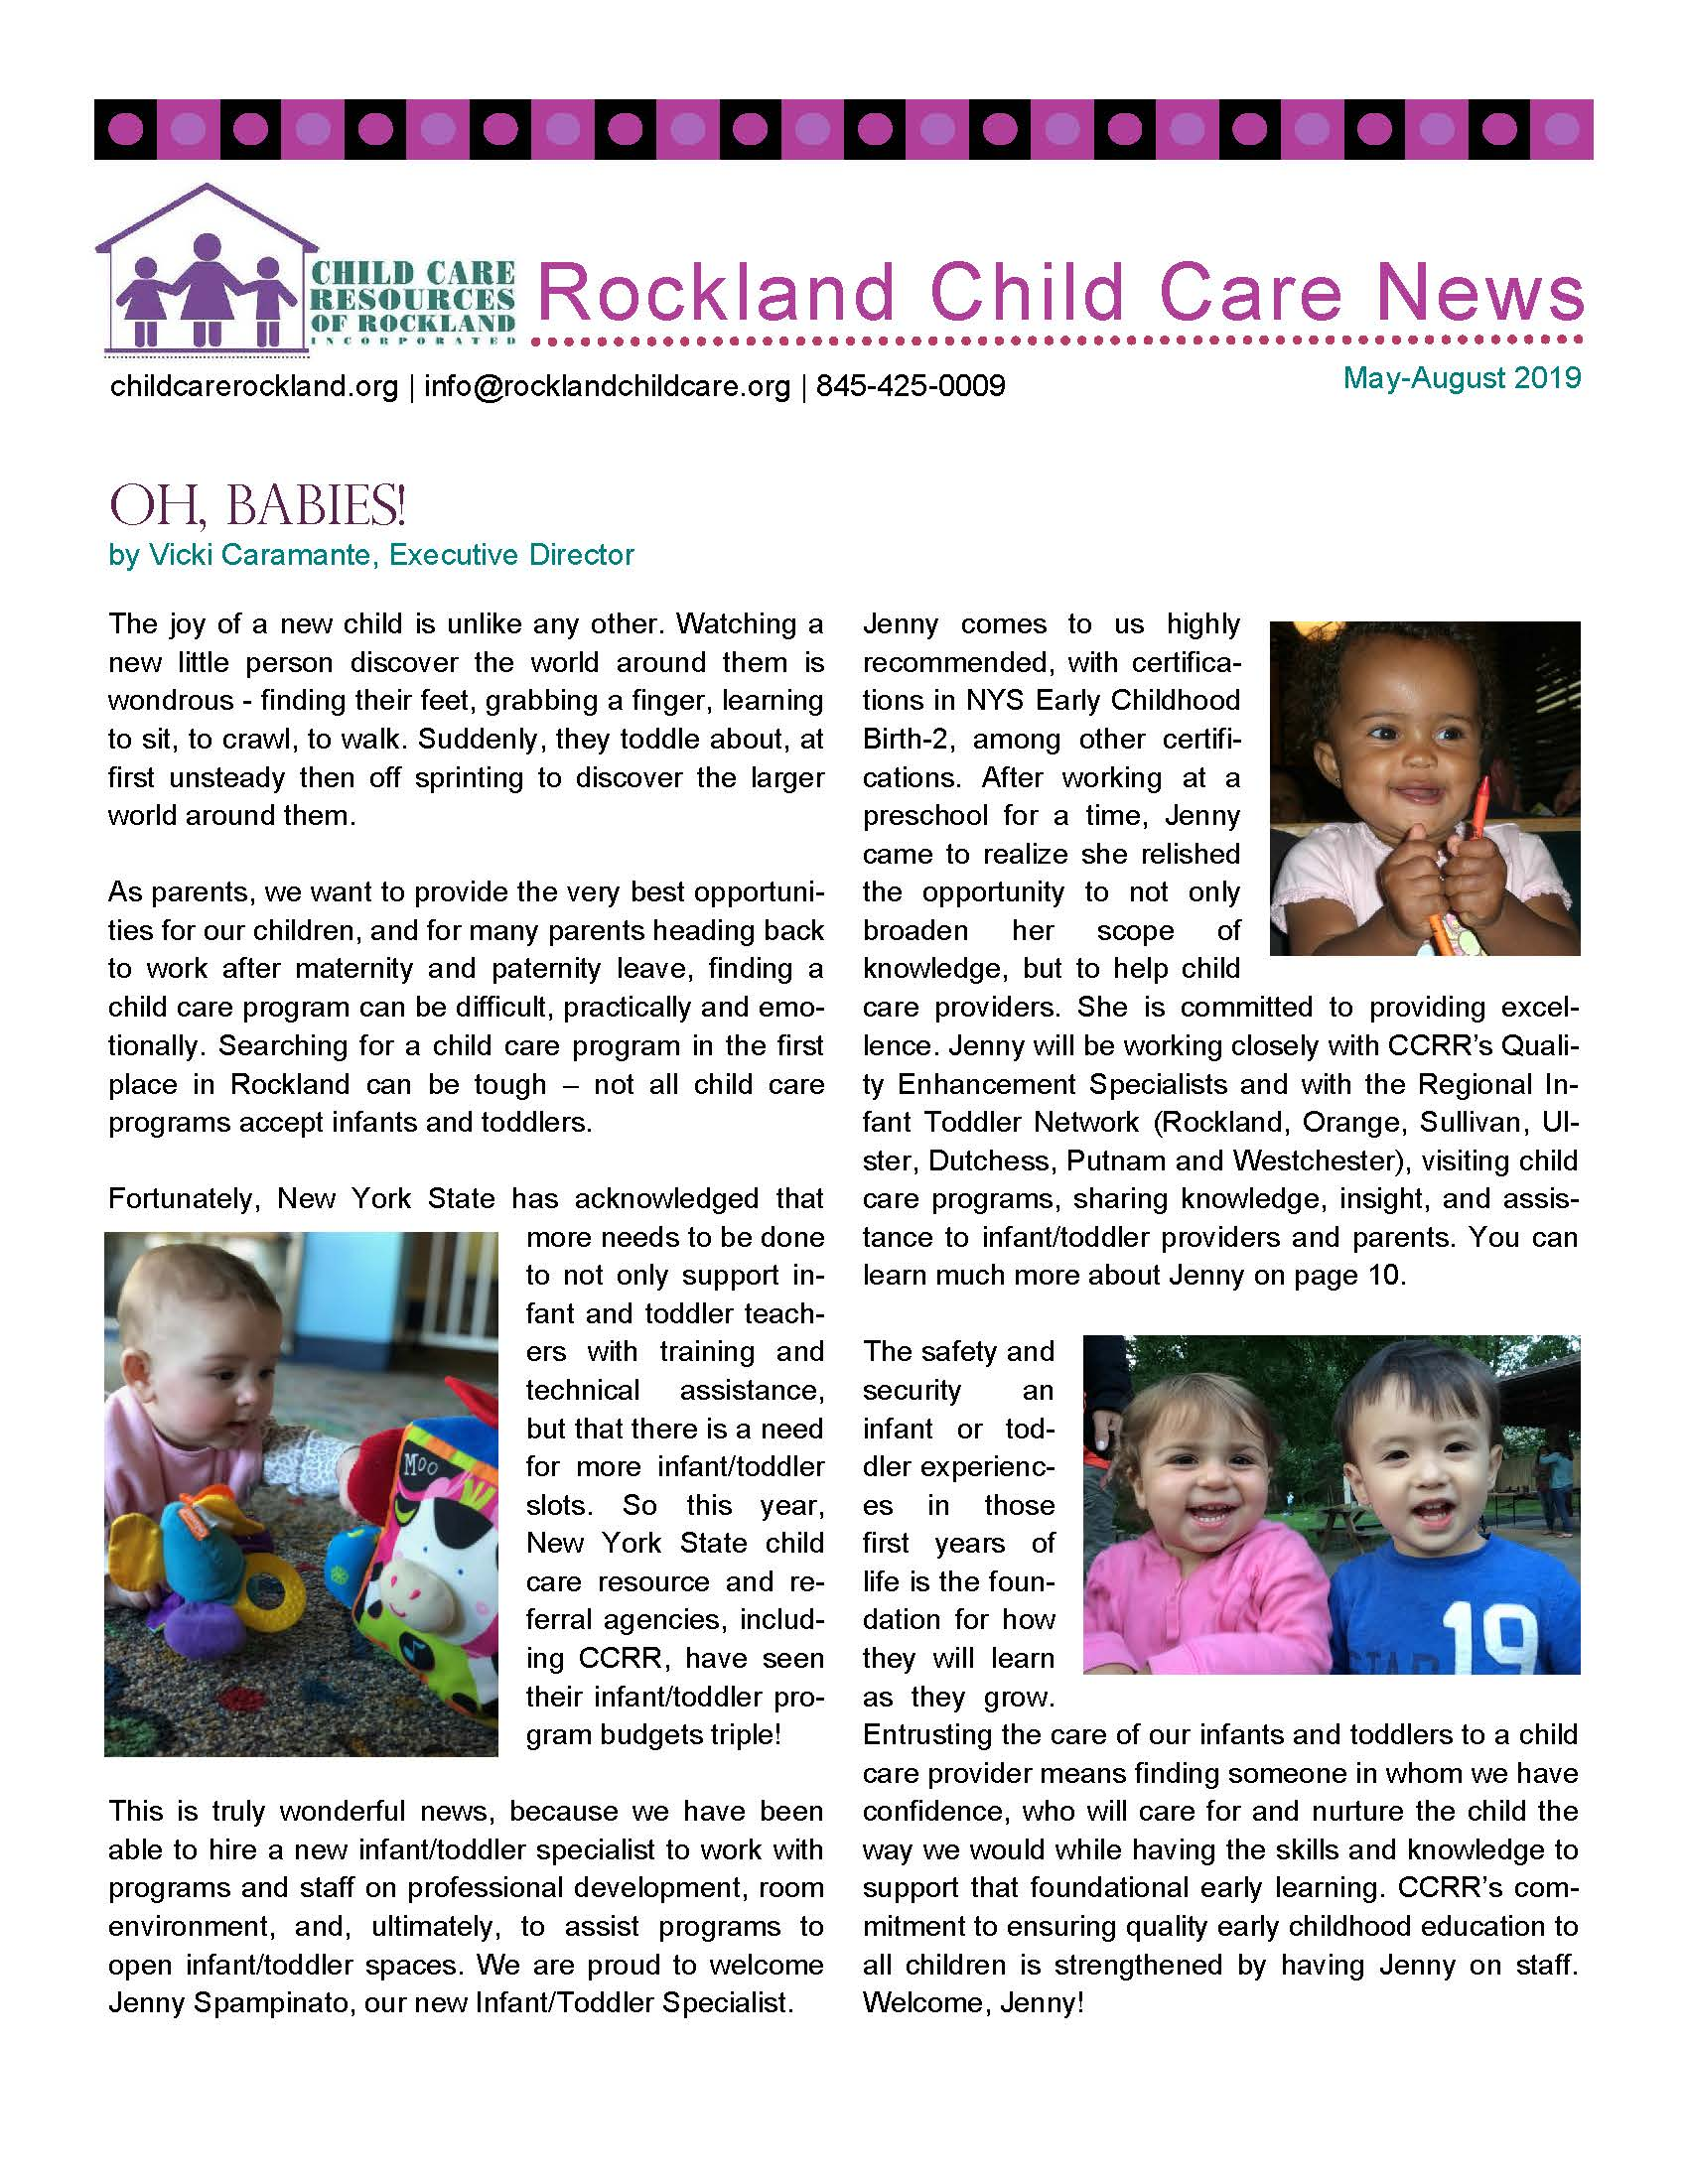 Rockland Child Care News May-August 2019